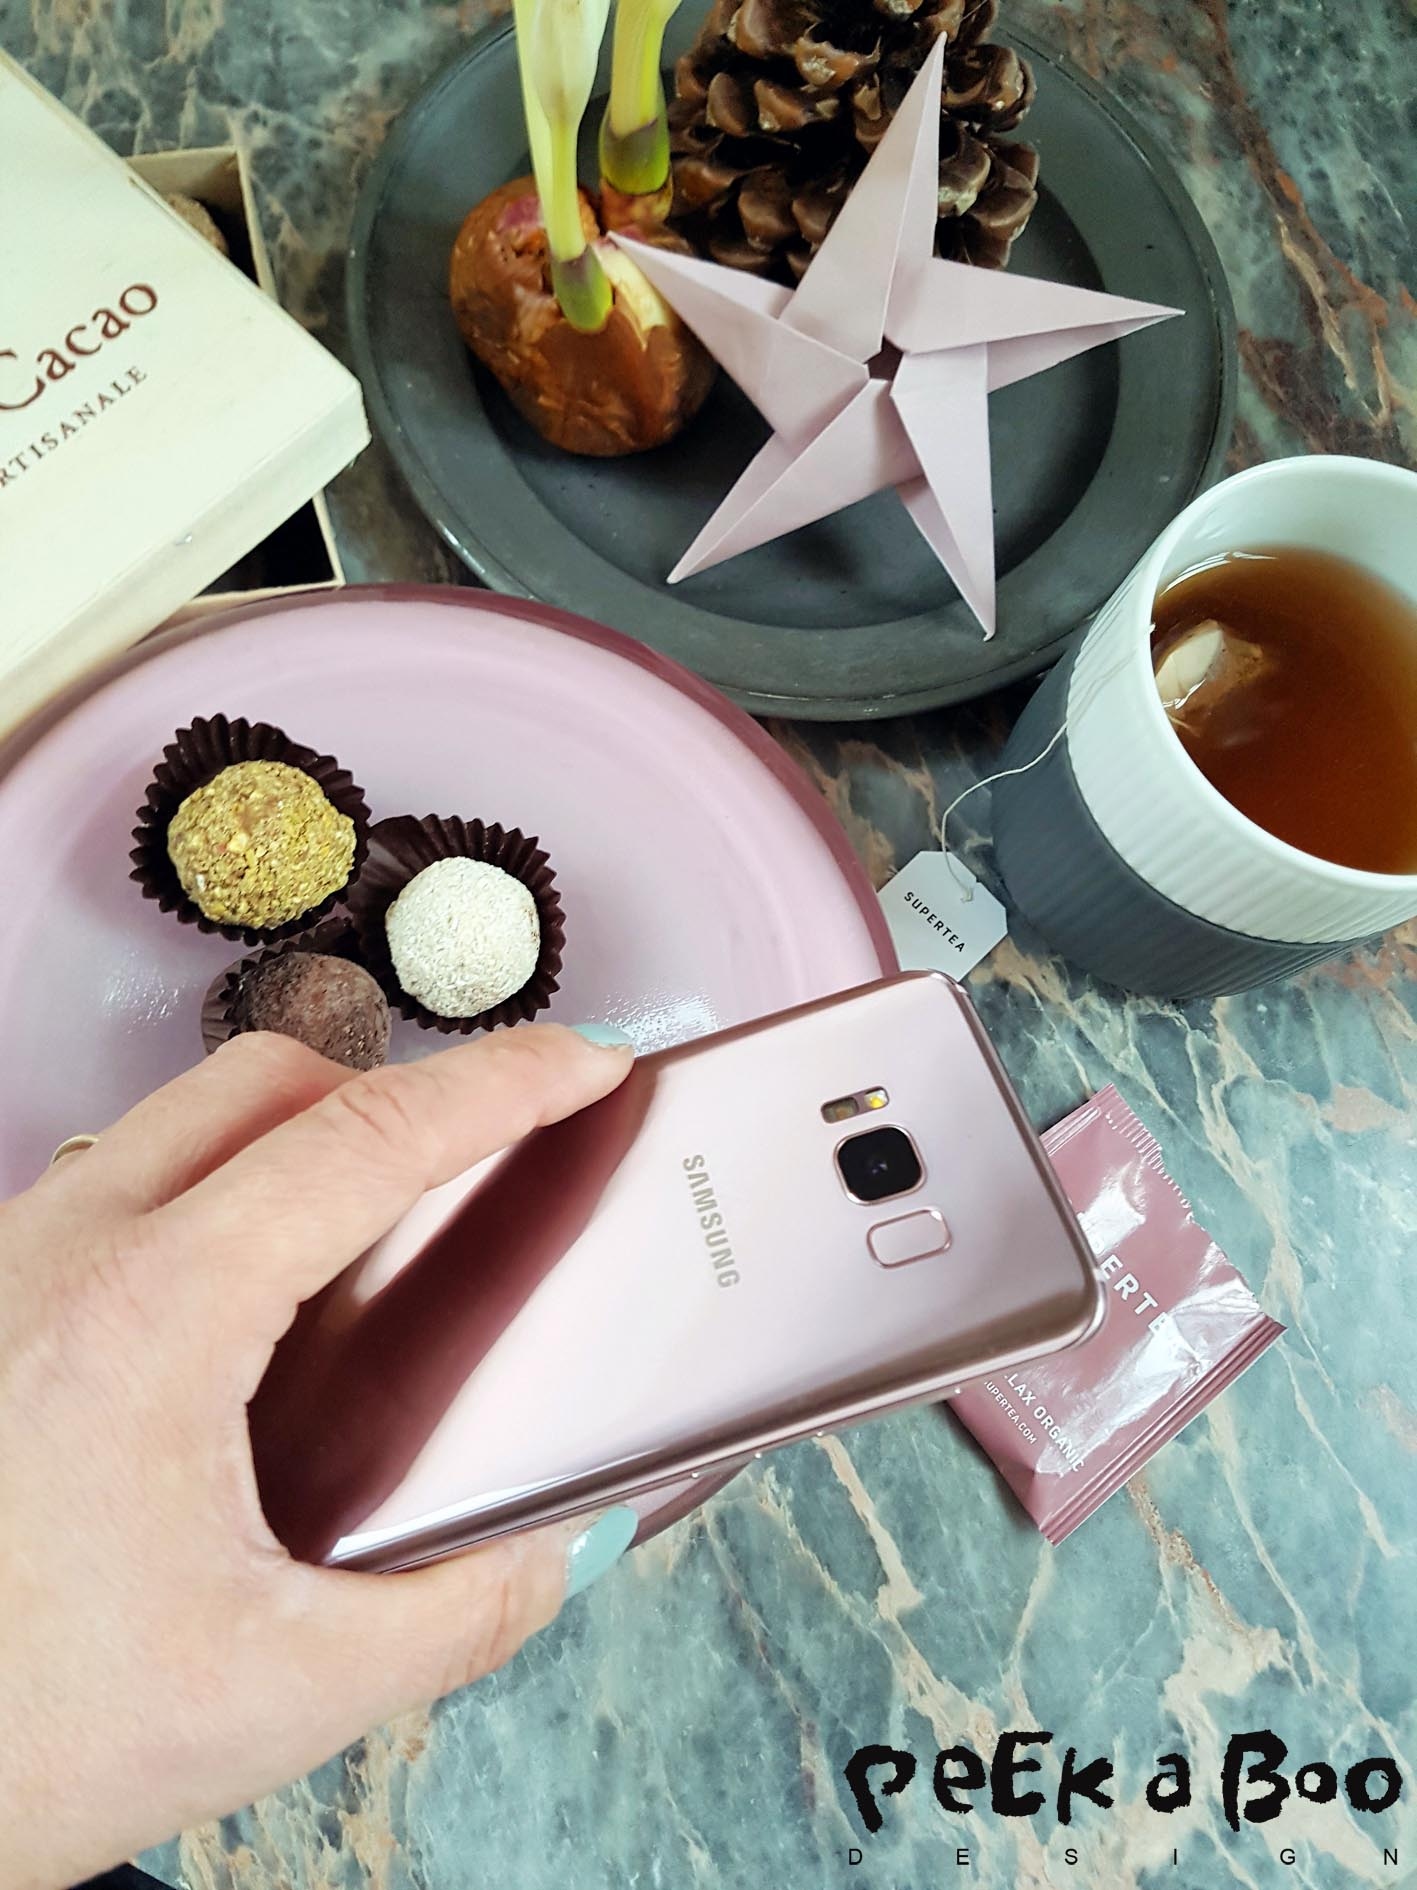 Go for it...it's feminine and cool at the same time...gadget that speaks to the female side of you...